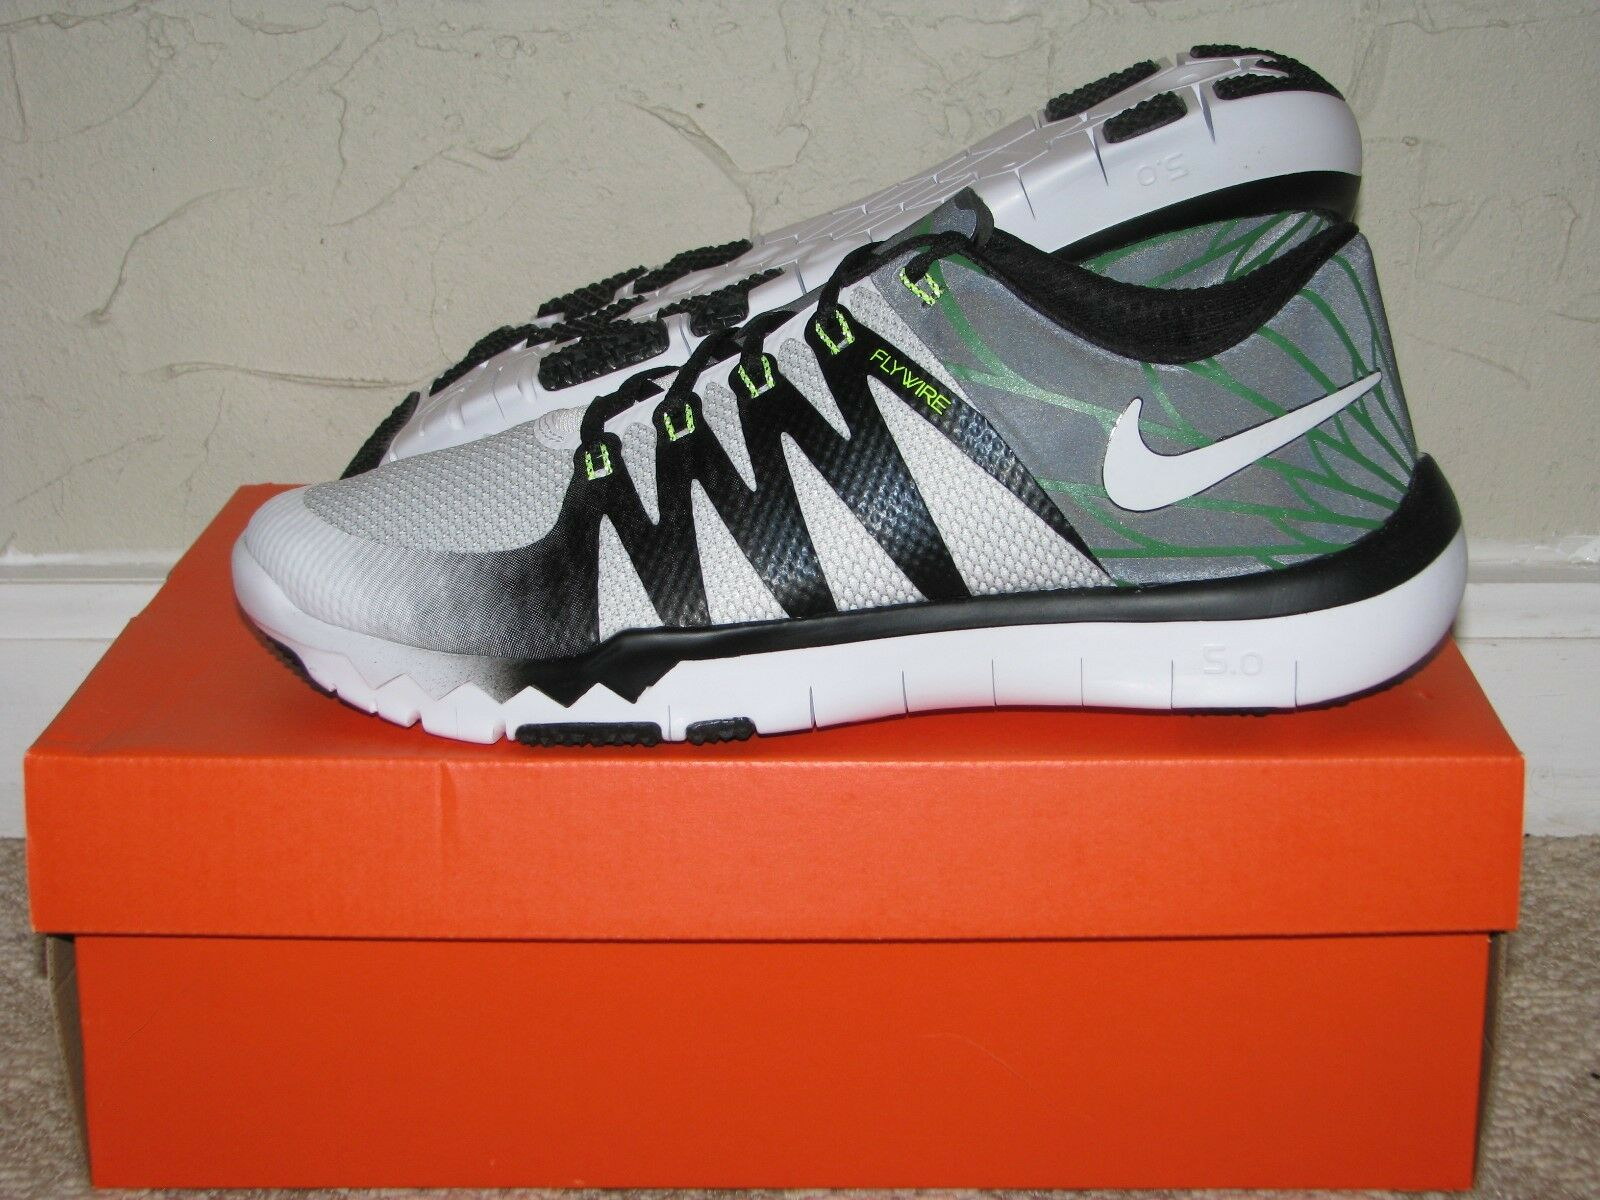 Nike libera trainer 5,0 v6 new!723939-100 amp oregon ducks white Uomo taglia 10 s new!723939-100 v6 b0687e